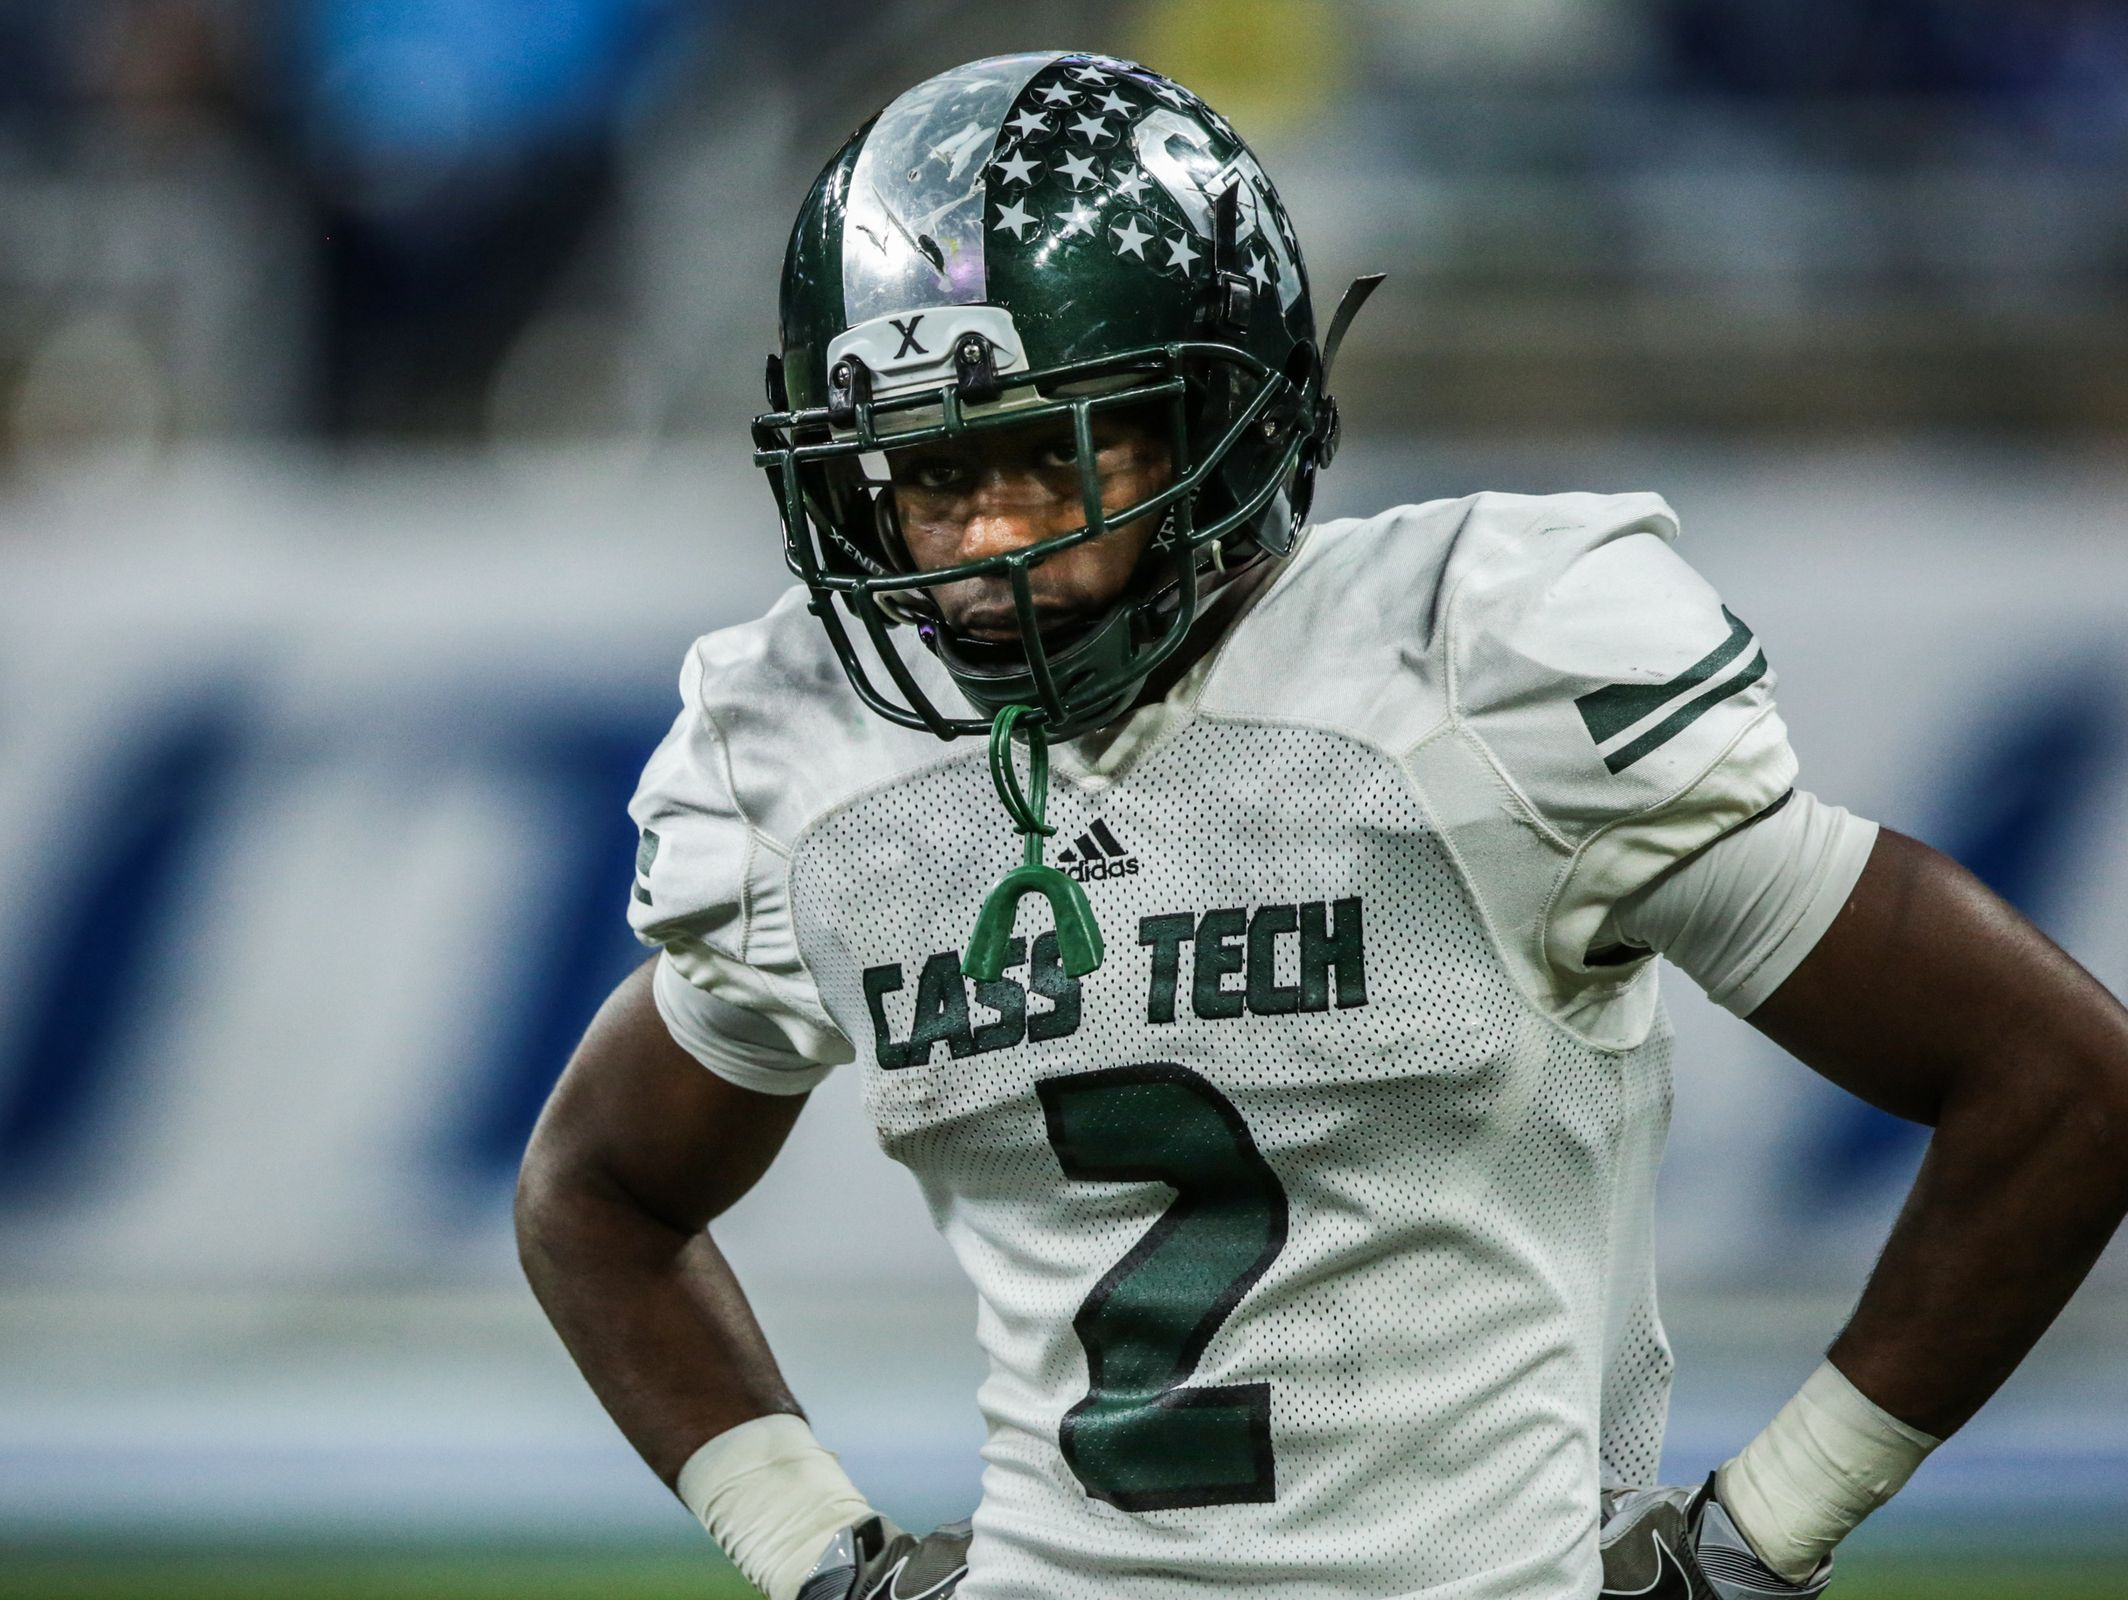 Detroit Cass Tech's Donovan Johnson (2) during the Division 1 High School Championship game against Detroit Catholic Central on Saturday November 26, 2016, at Ford Field in Detroit, MI.